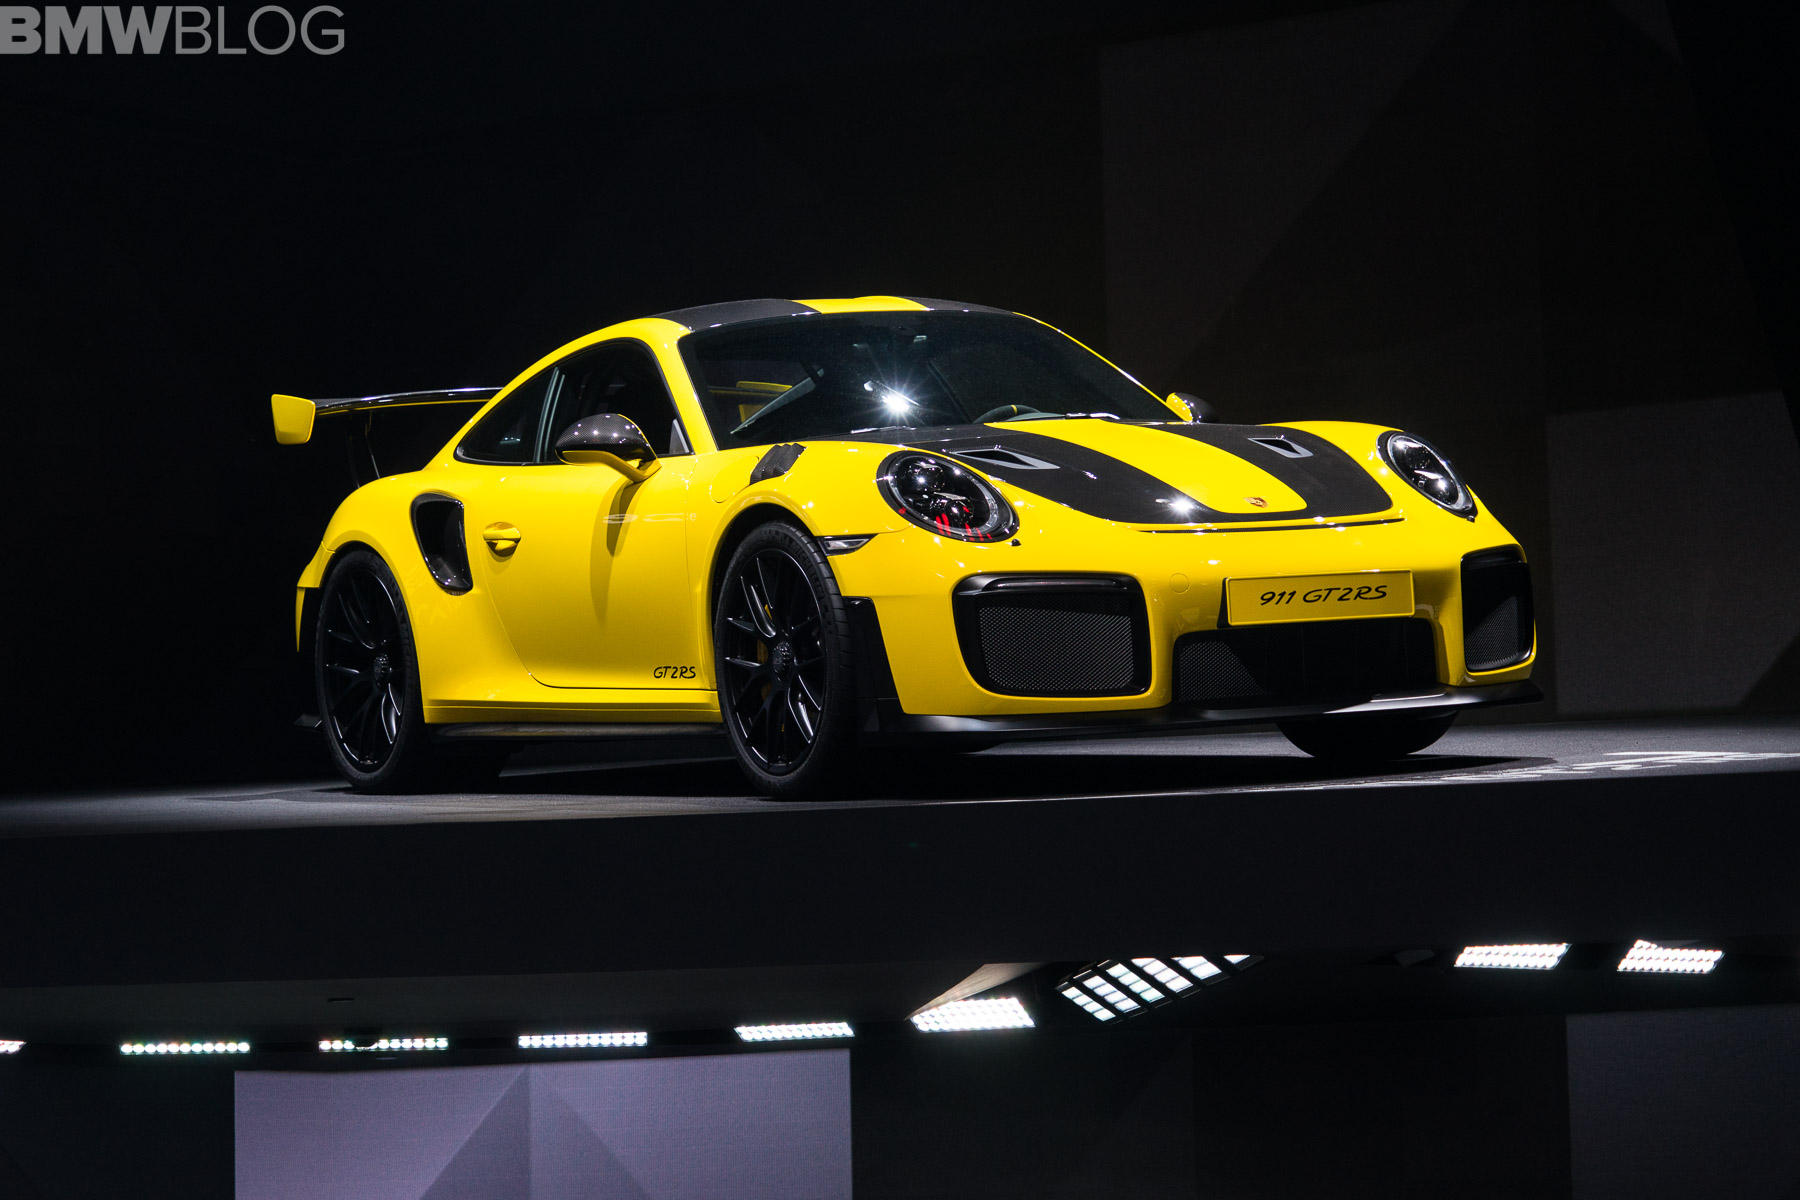 Porsche S Latest Hot Race Car Comes To Frankfurt 911 Gt2 Rs